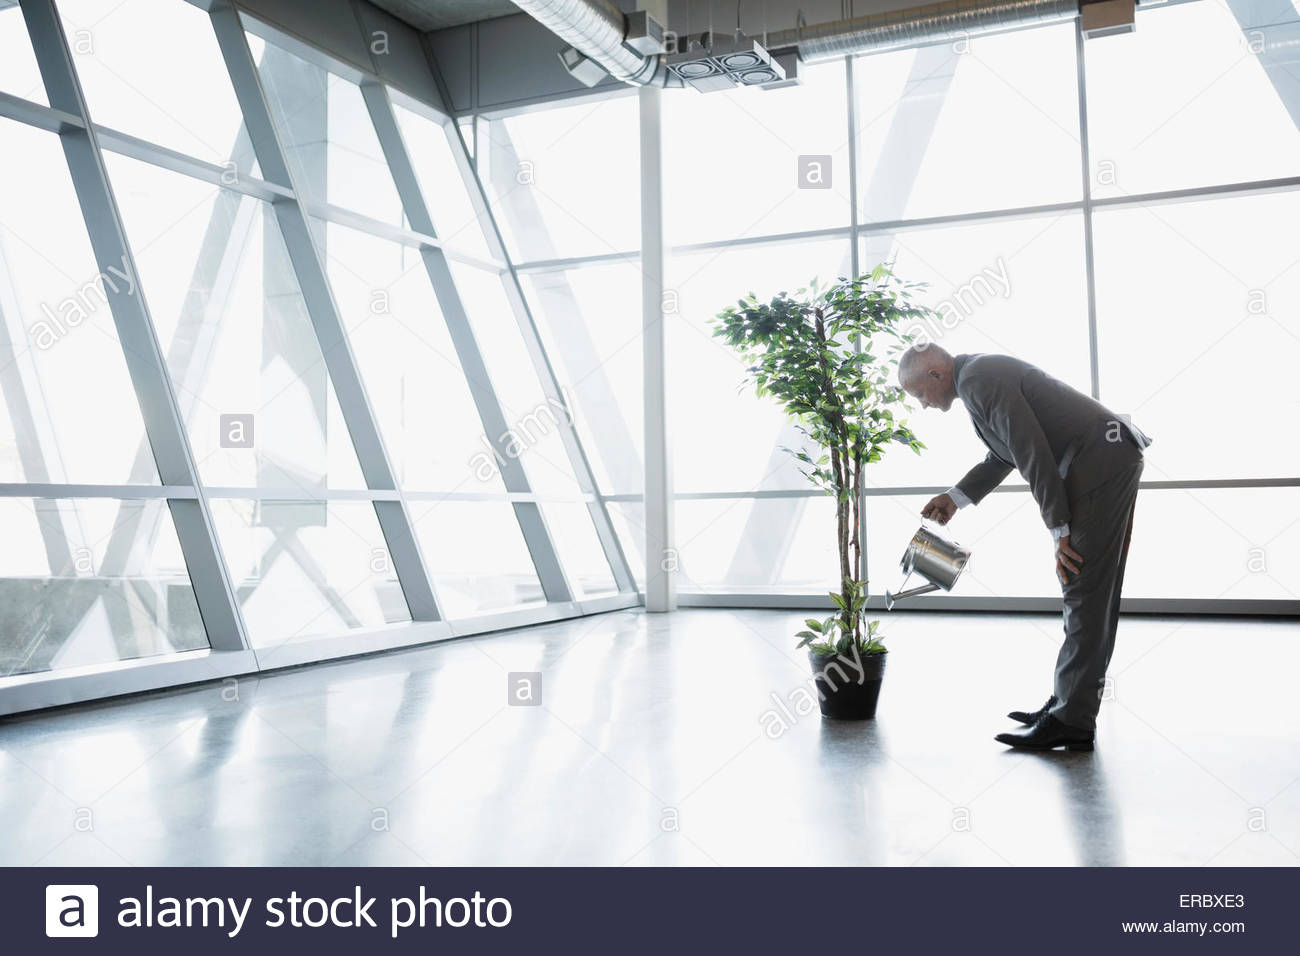 Businessman watering potted tree in modern office Photo Stock